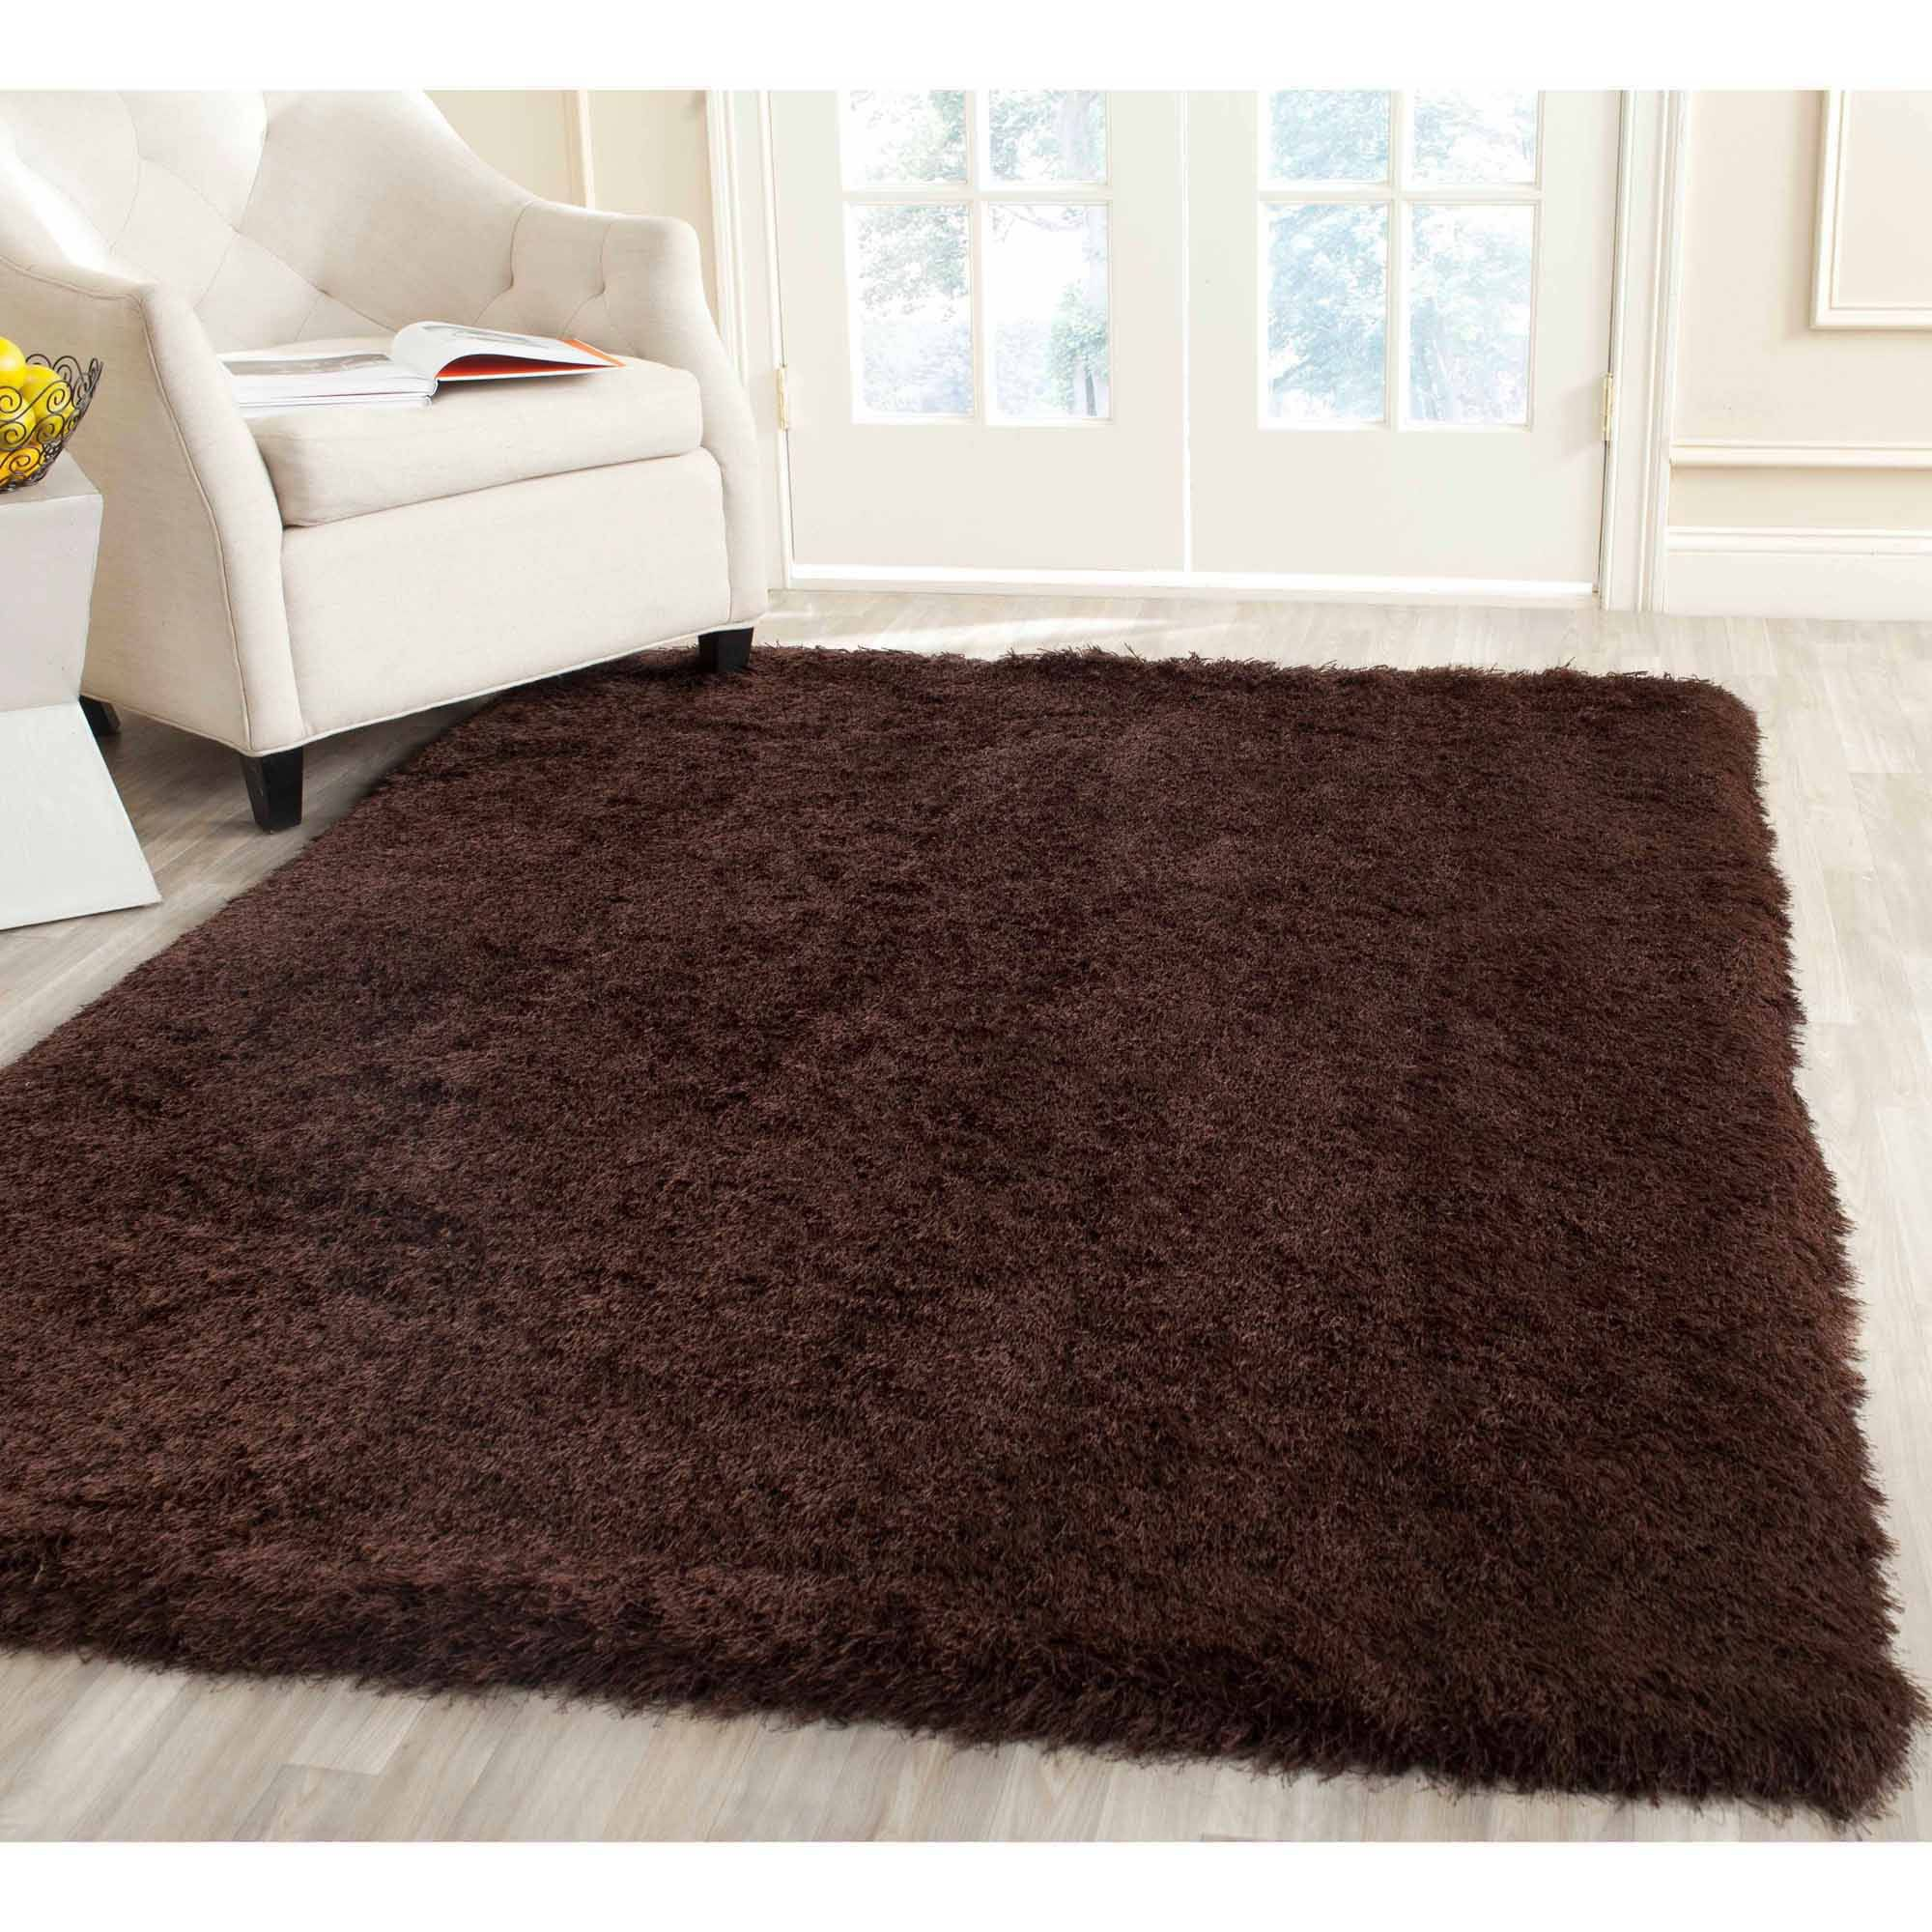 Shaggy Dark Brown Area Rug For Living Room Rugs In Living Room Brown Area Rugs Rugs